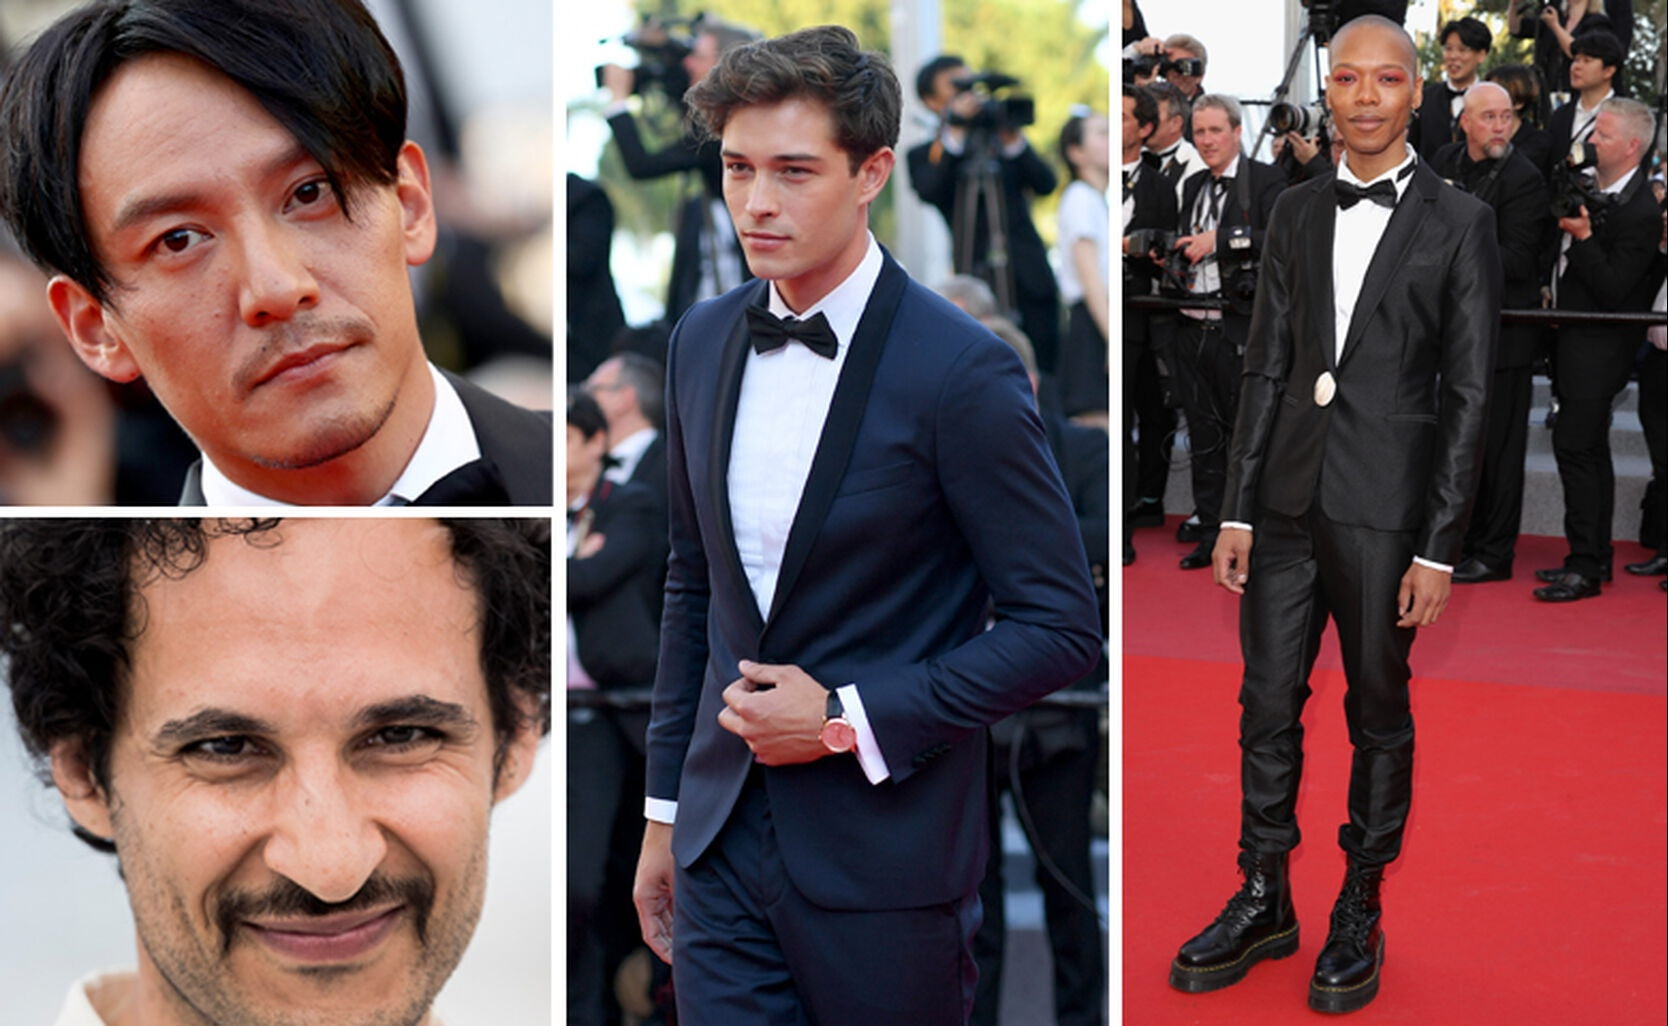 Chang Chen, Ali Abbasi, Francisco Lachowski and Nakhane Toure